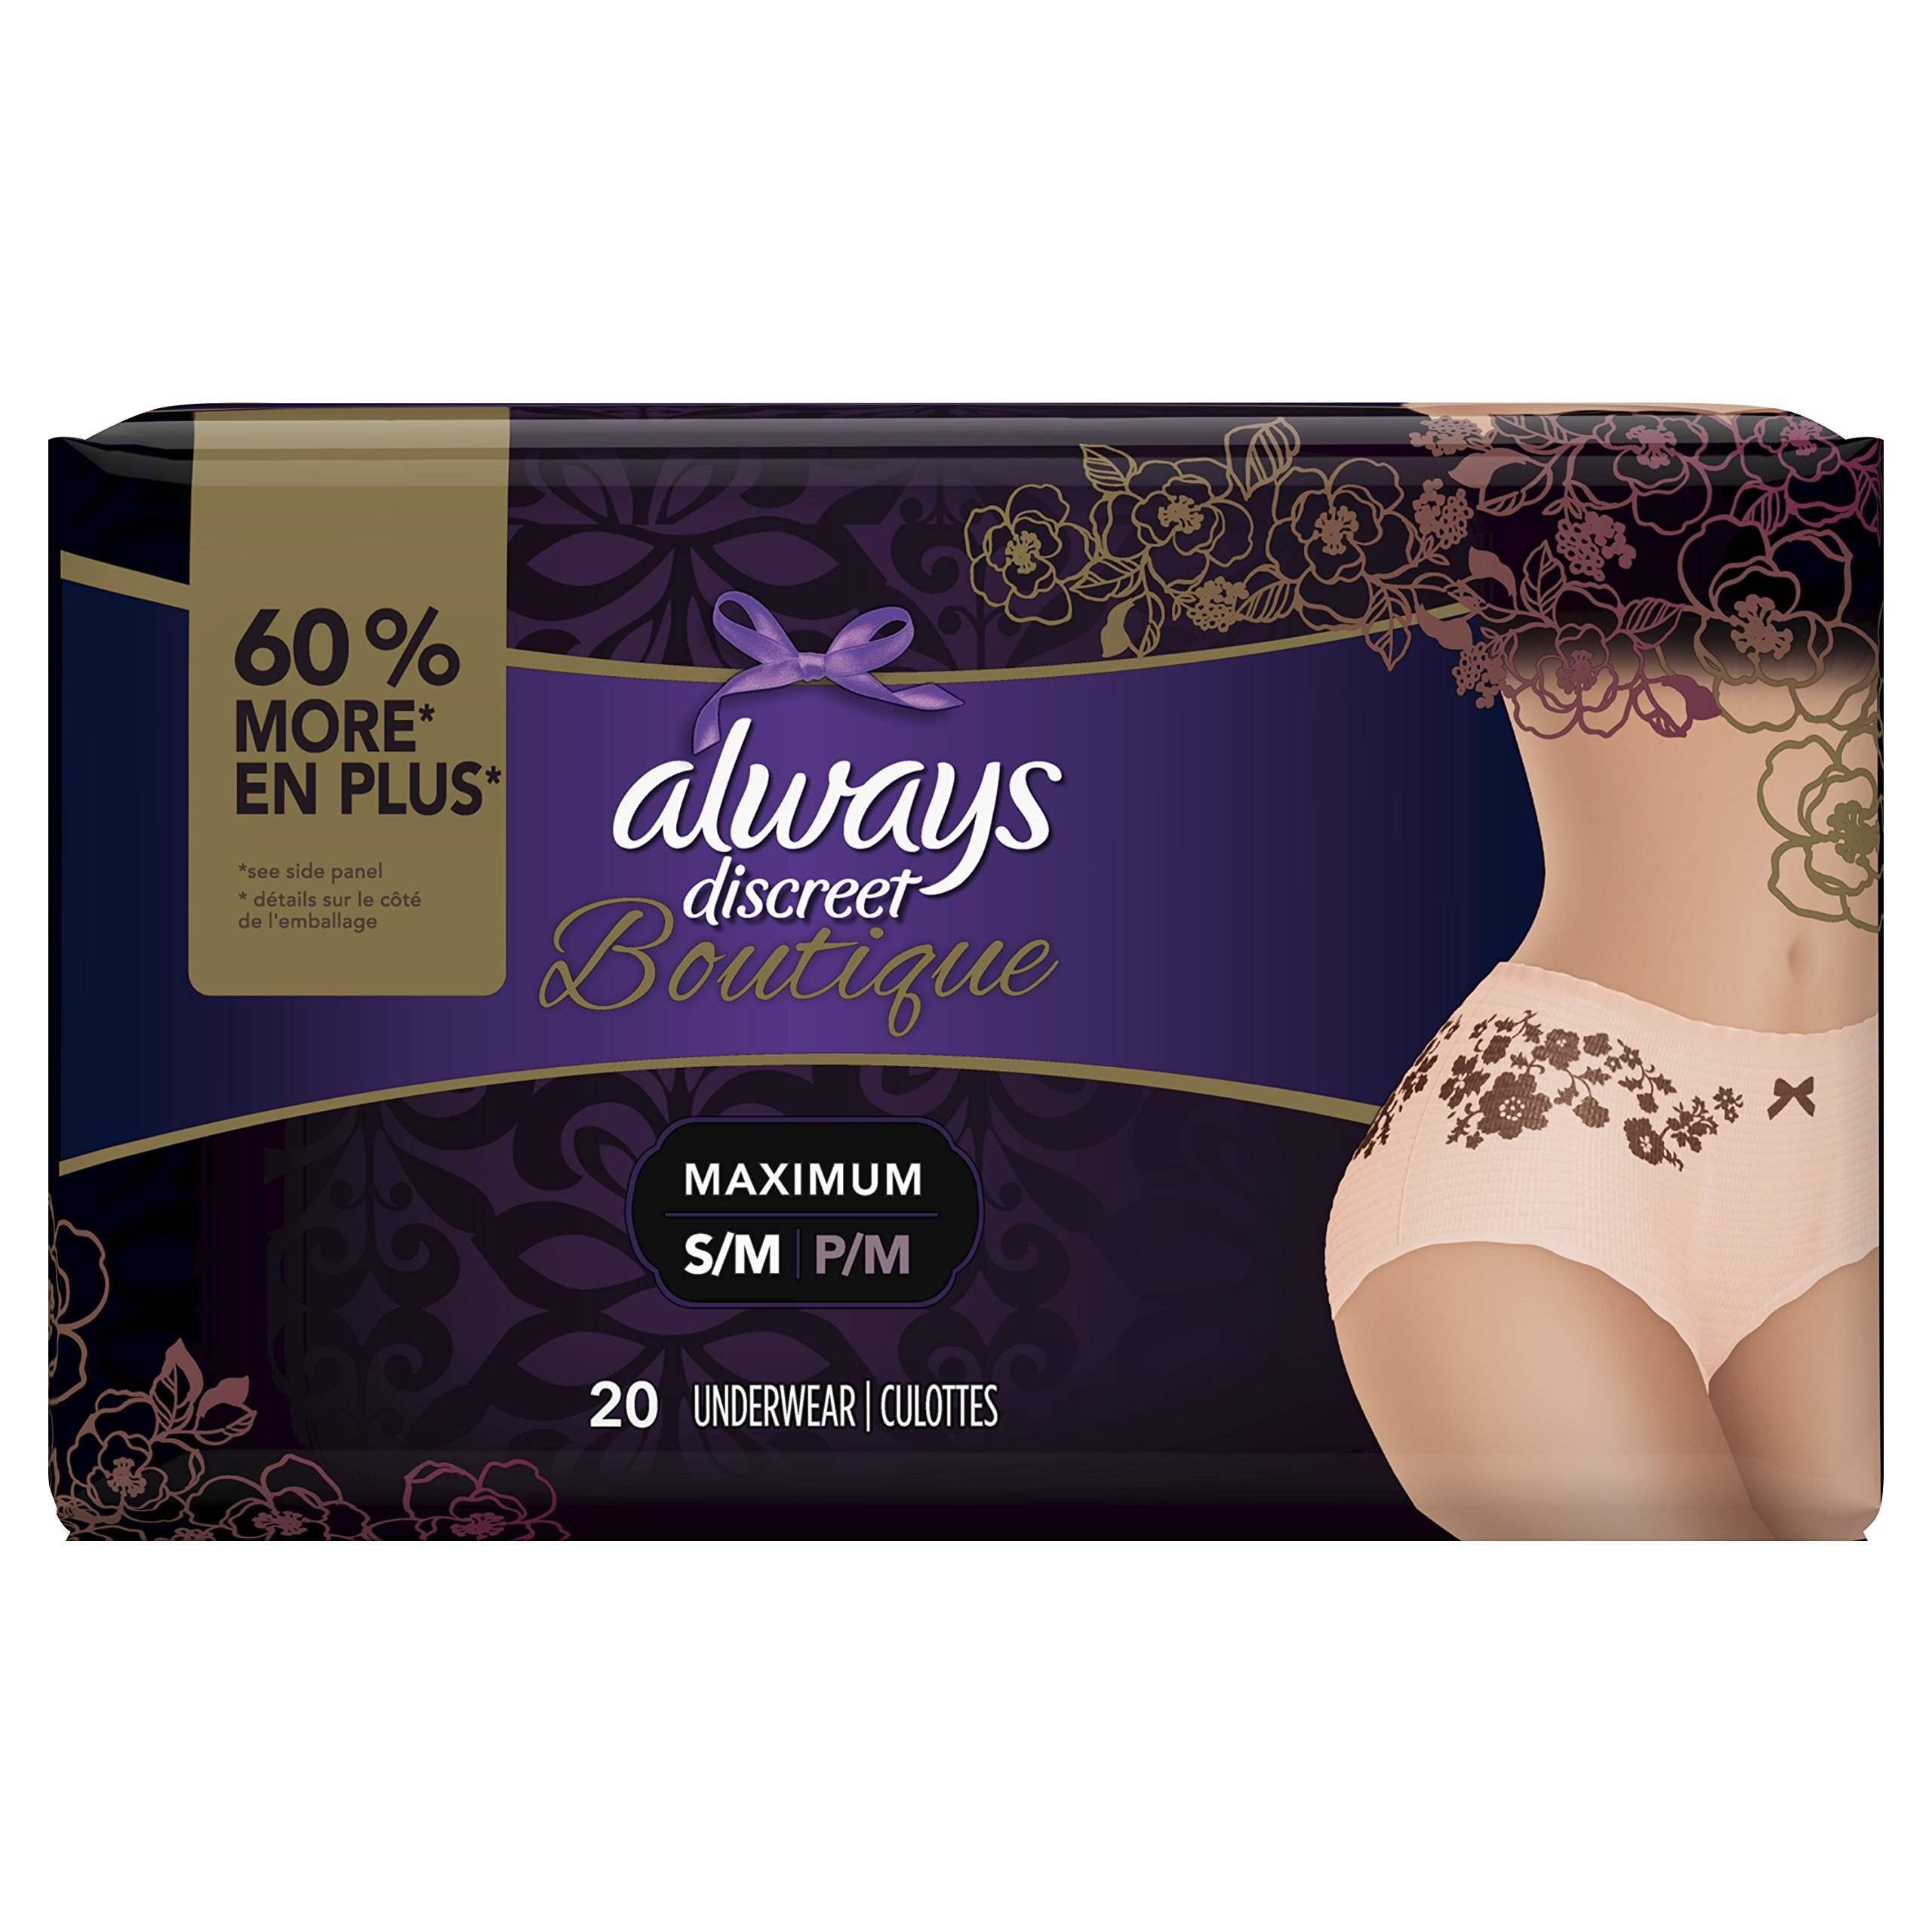 Always Discreet Boutique, Incontinence Underwear for Women, Maximum Protection, Peach, Small /